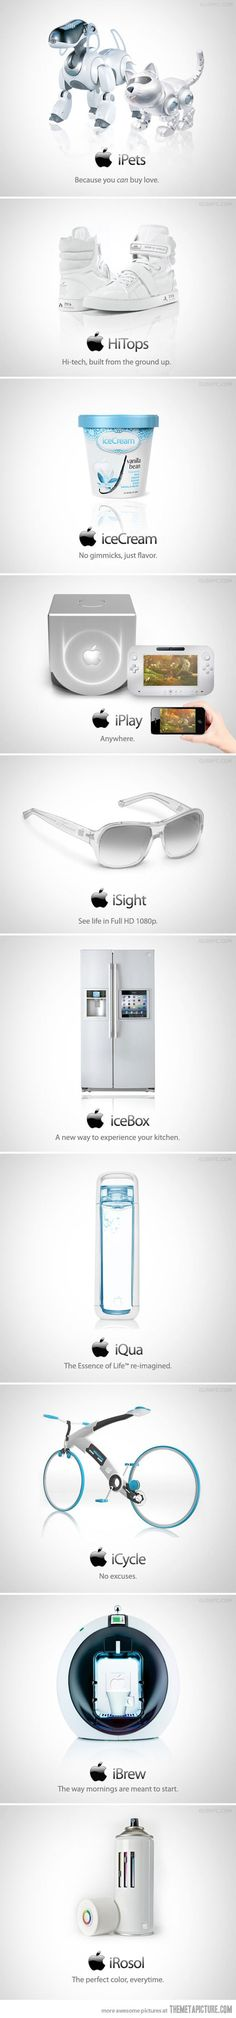 Possible Future Apple Products - The Meta Picture